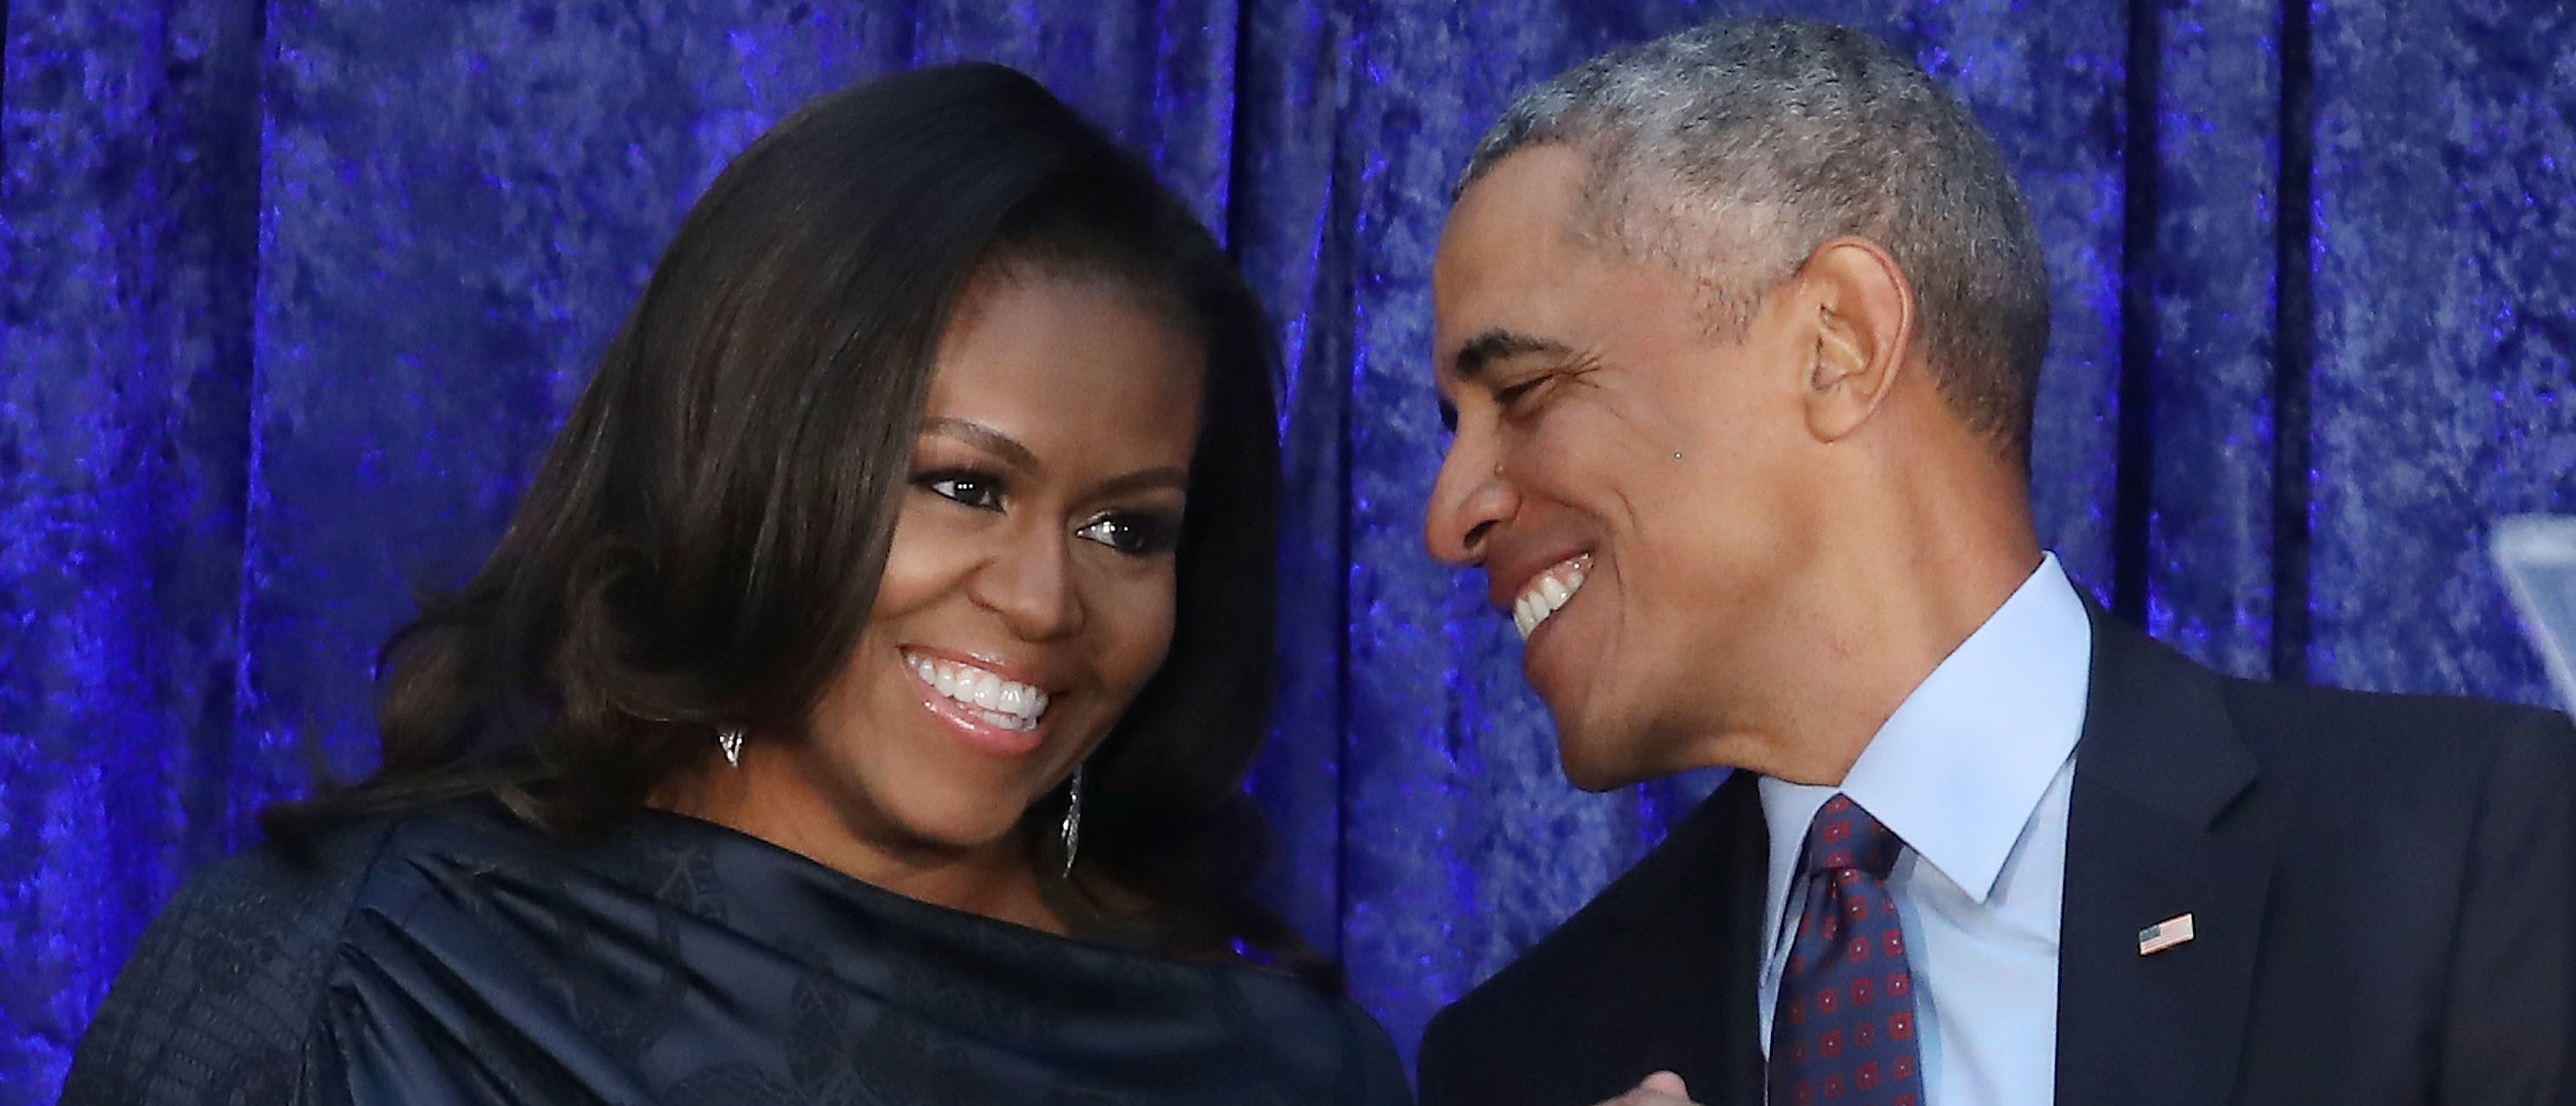 Plant Featured In The Obamas' 'American Factory' Netflix Film Was Listed As An 'Investment Success' Under Obama Initiative